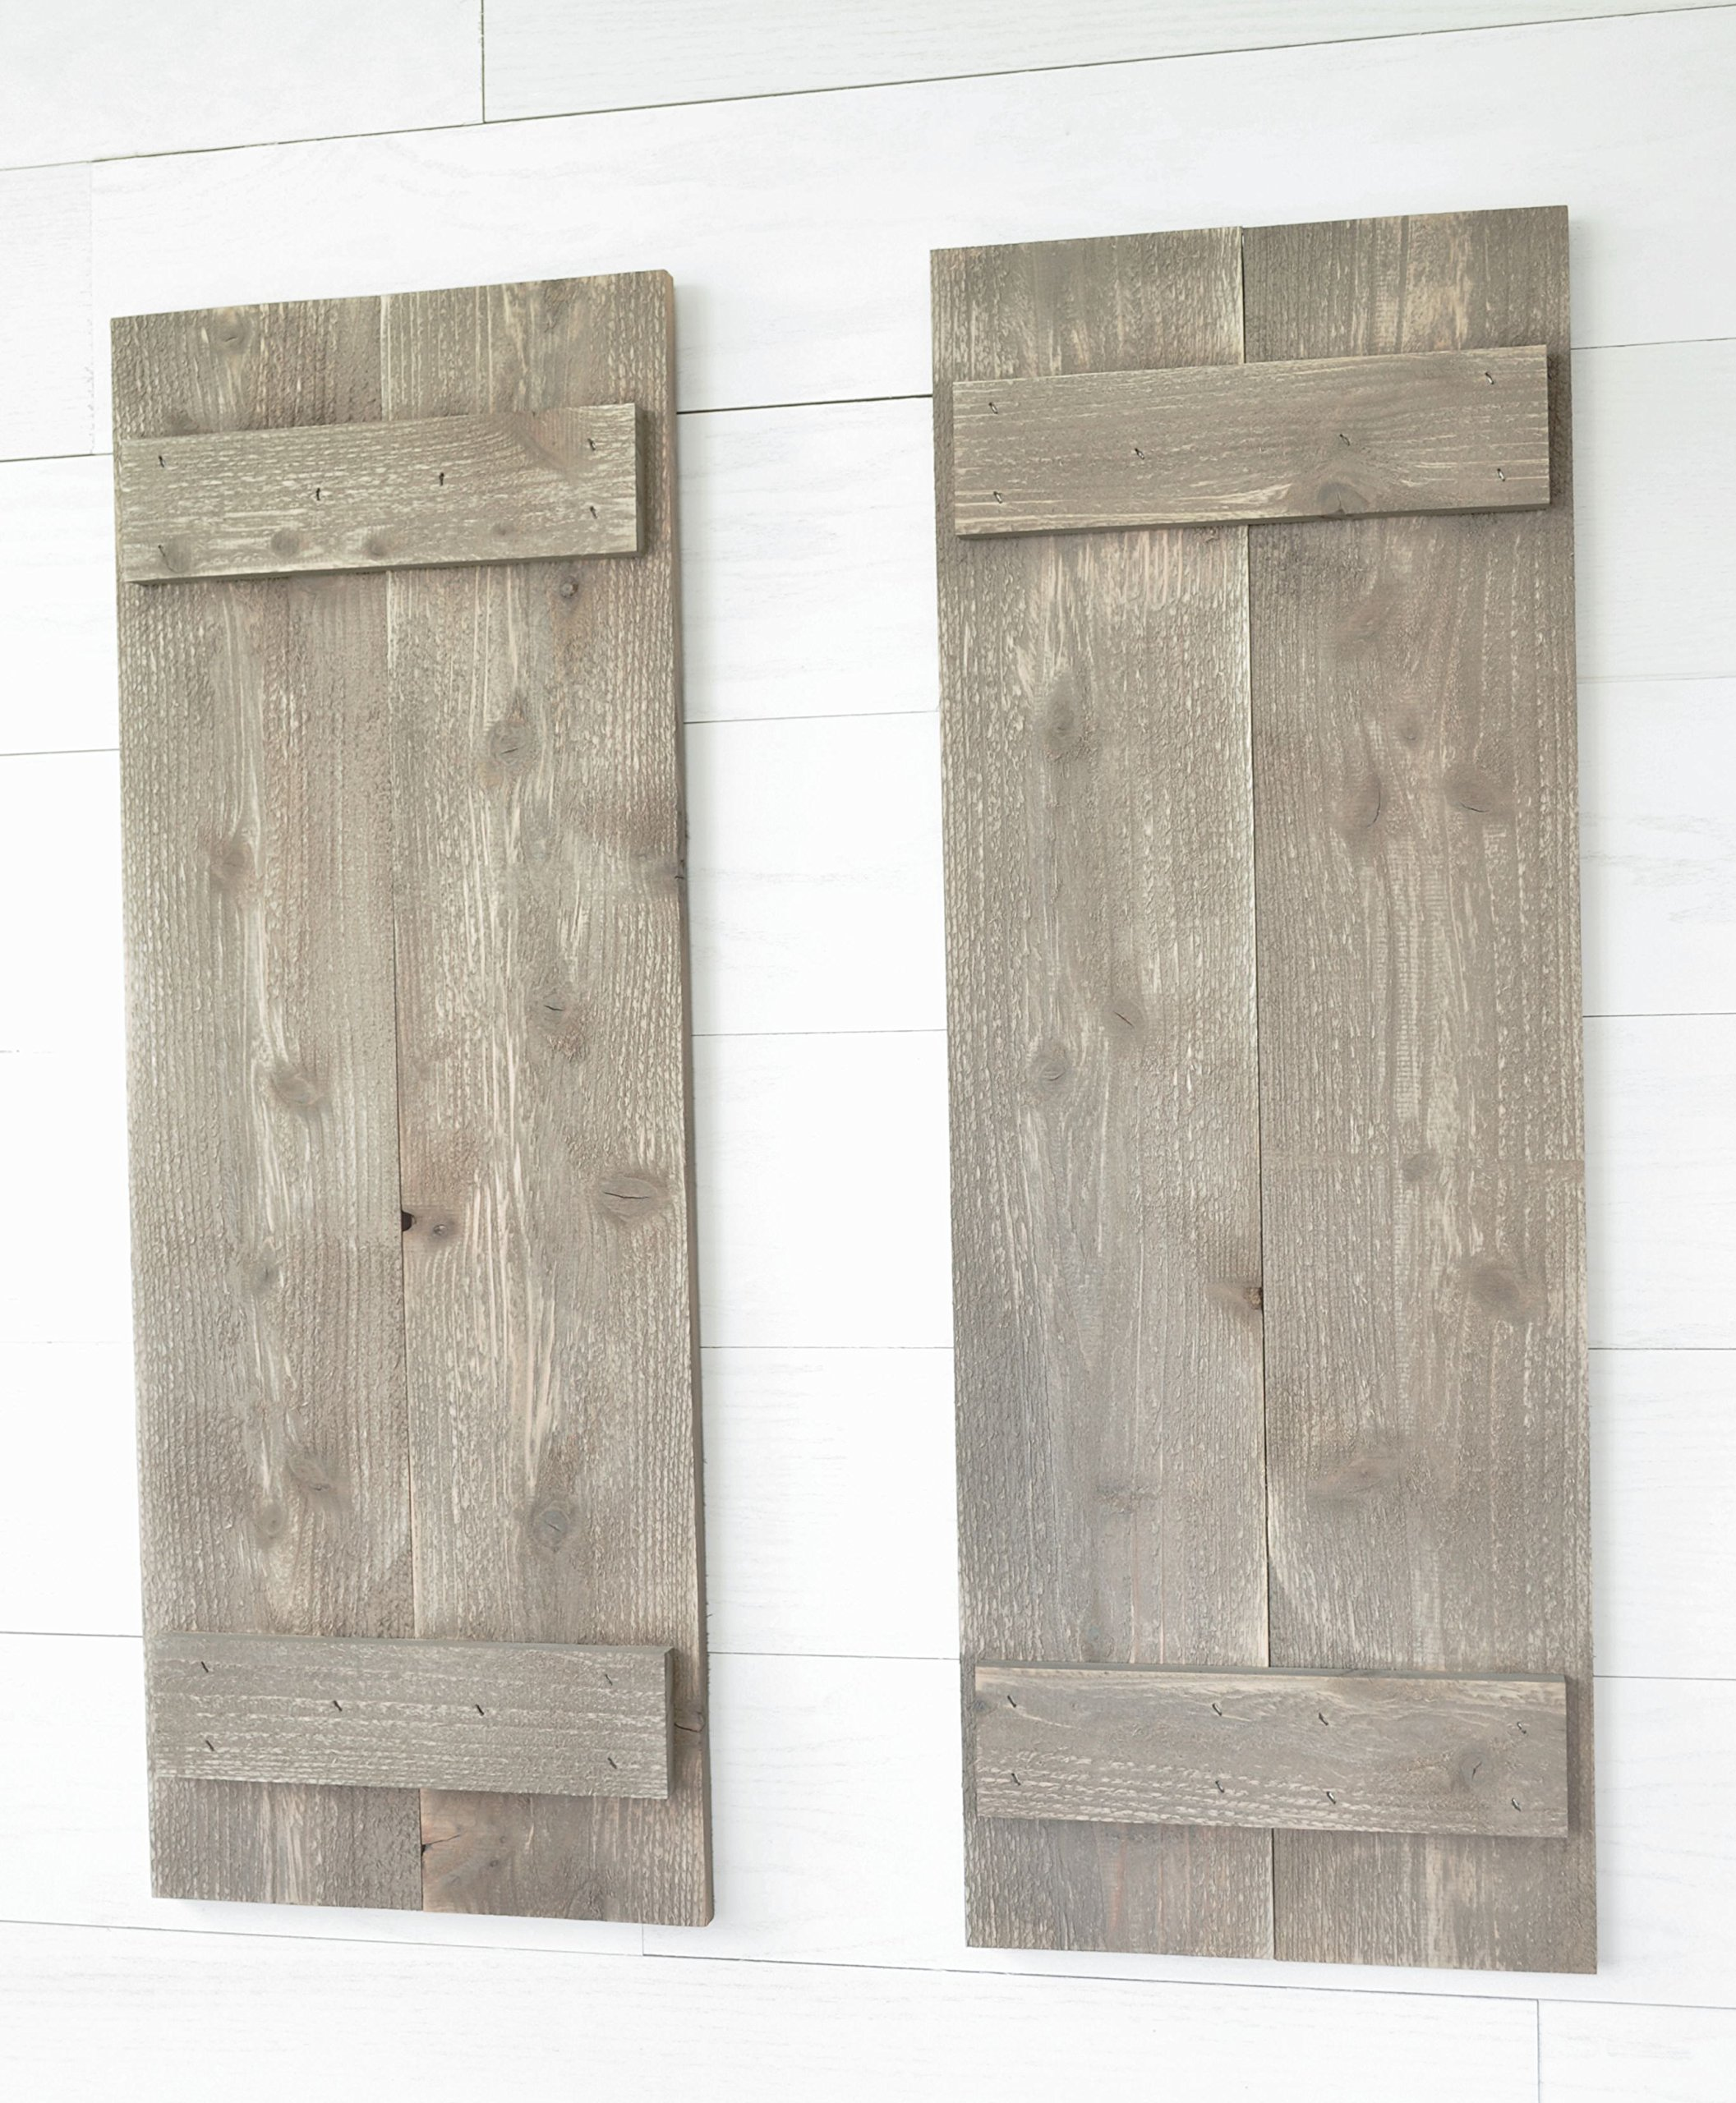 Rustic Barnwood Farmhouse Style Wood Shutters Set Of Two 30'' x 11''